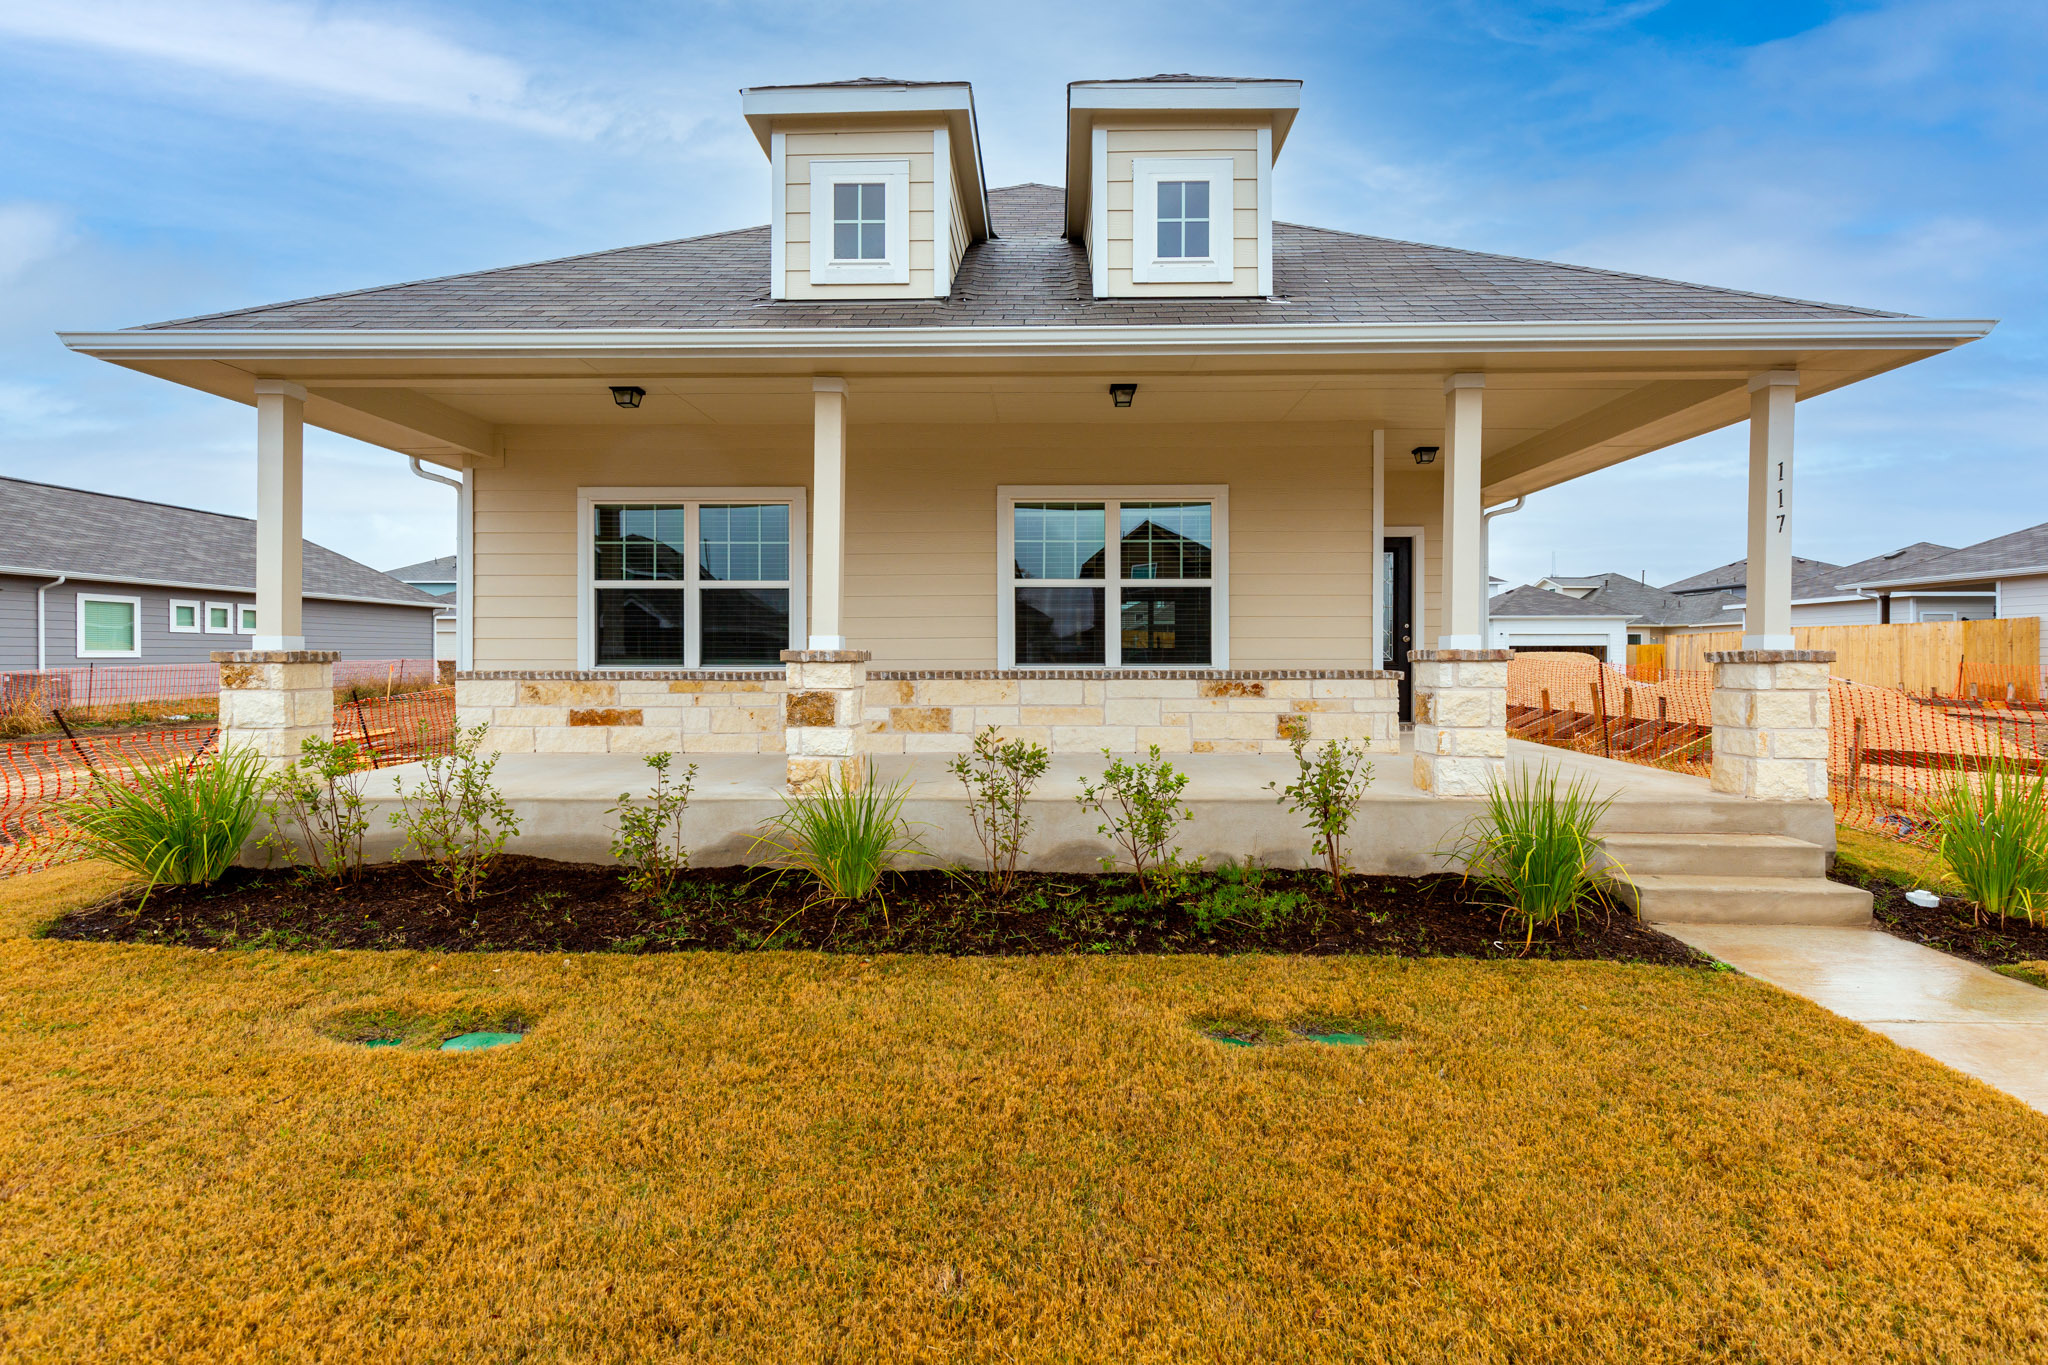 Apartment for Rent in Hutto